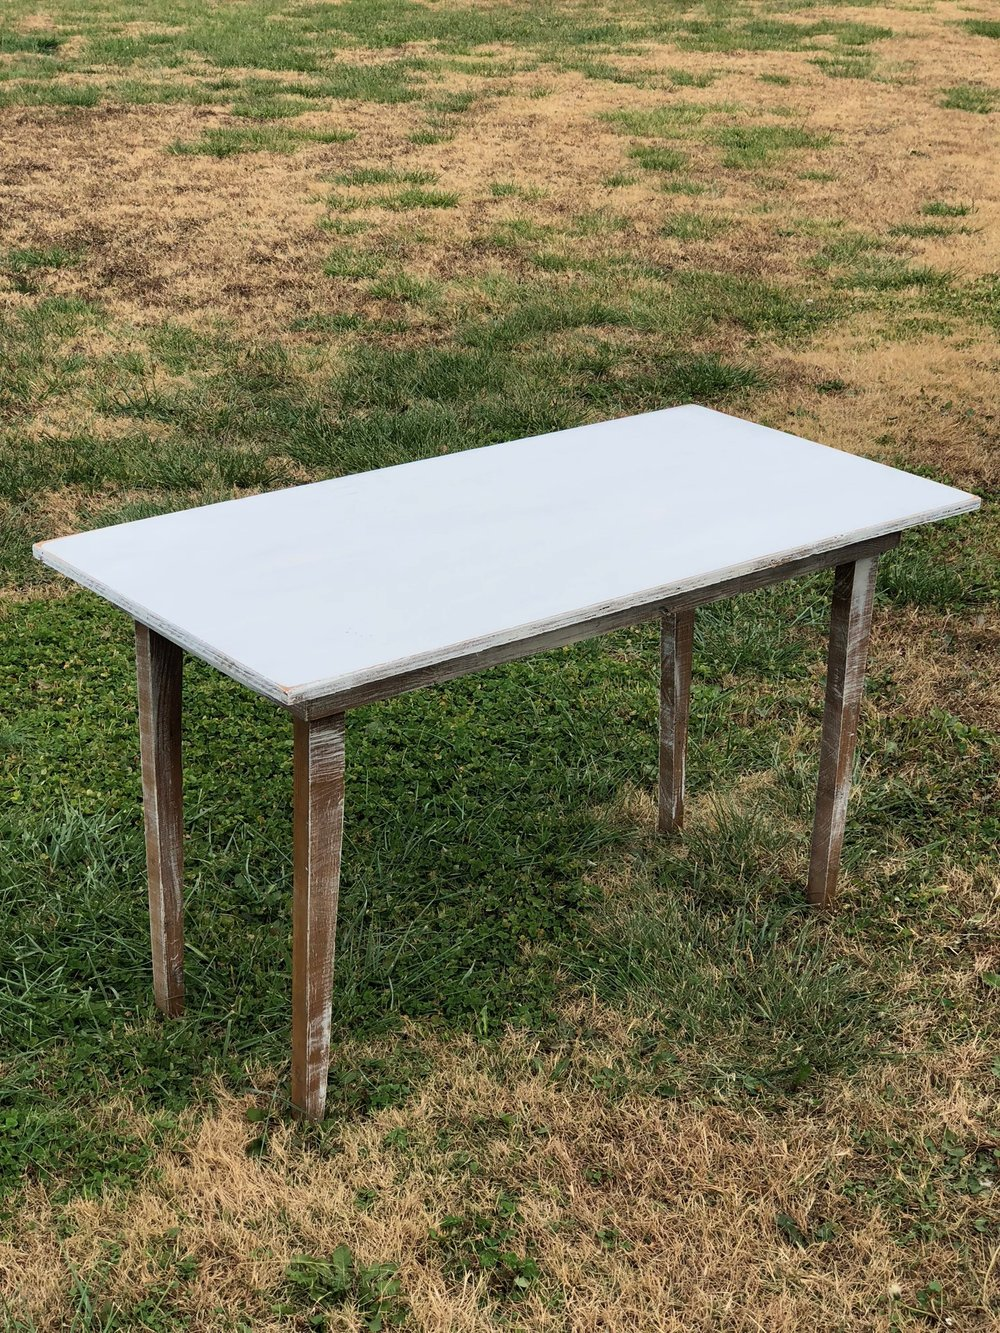 Rustic Wood Table~Rental $25